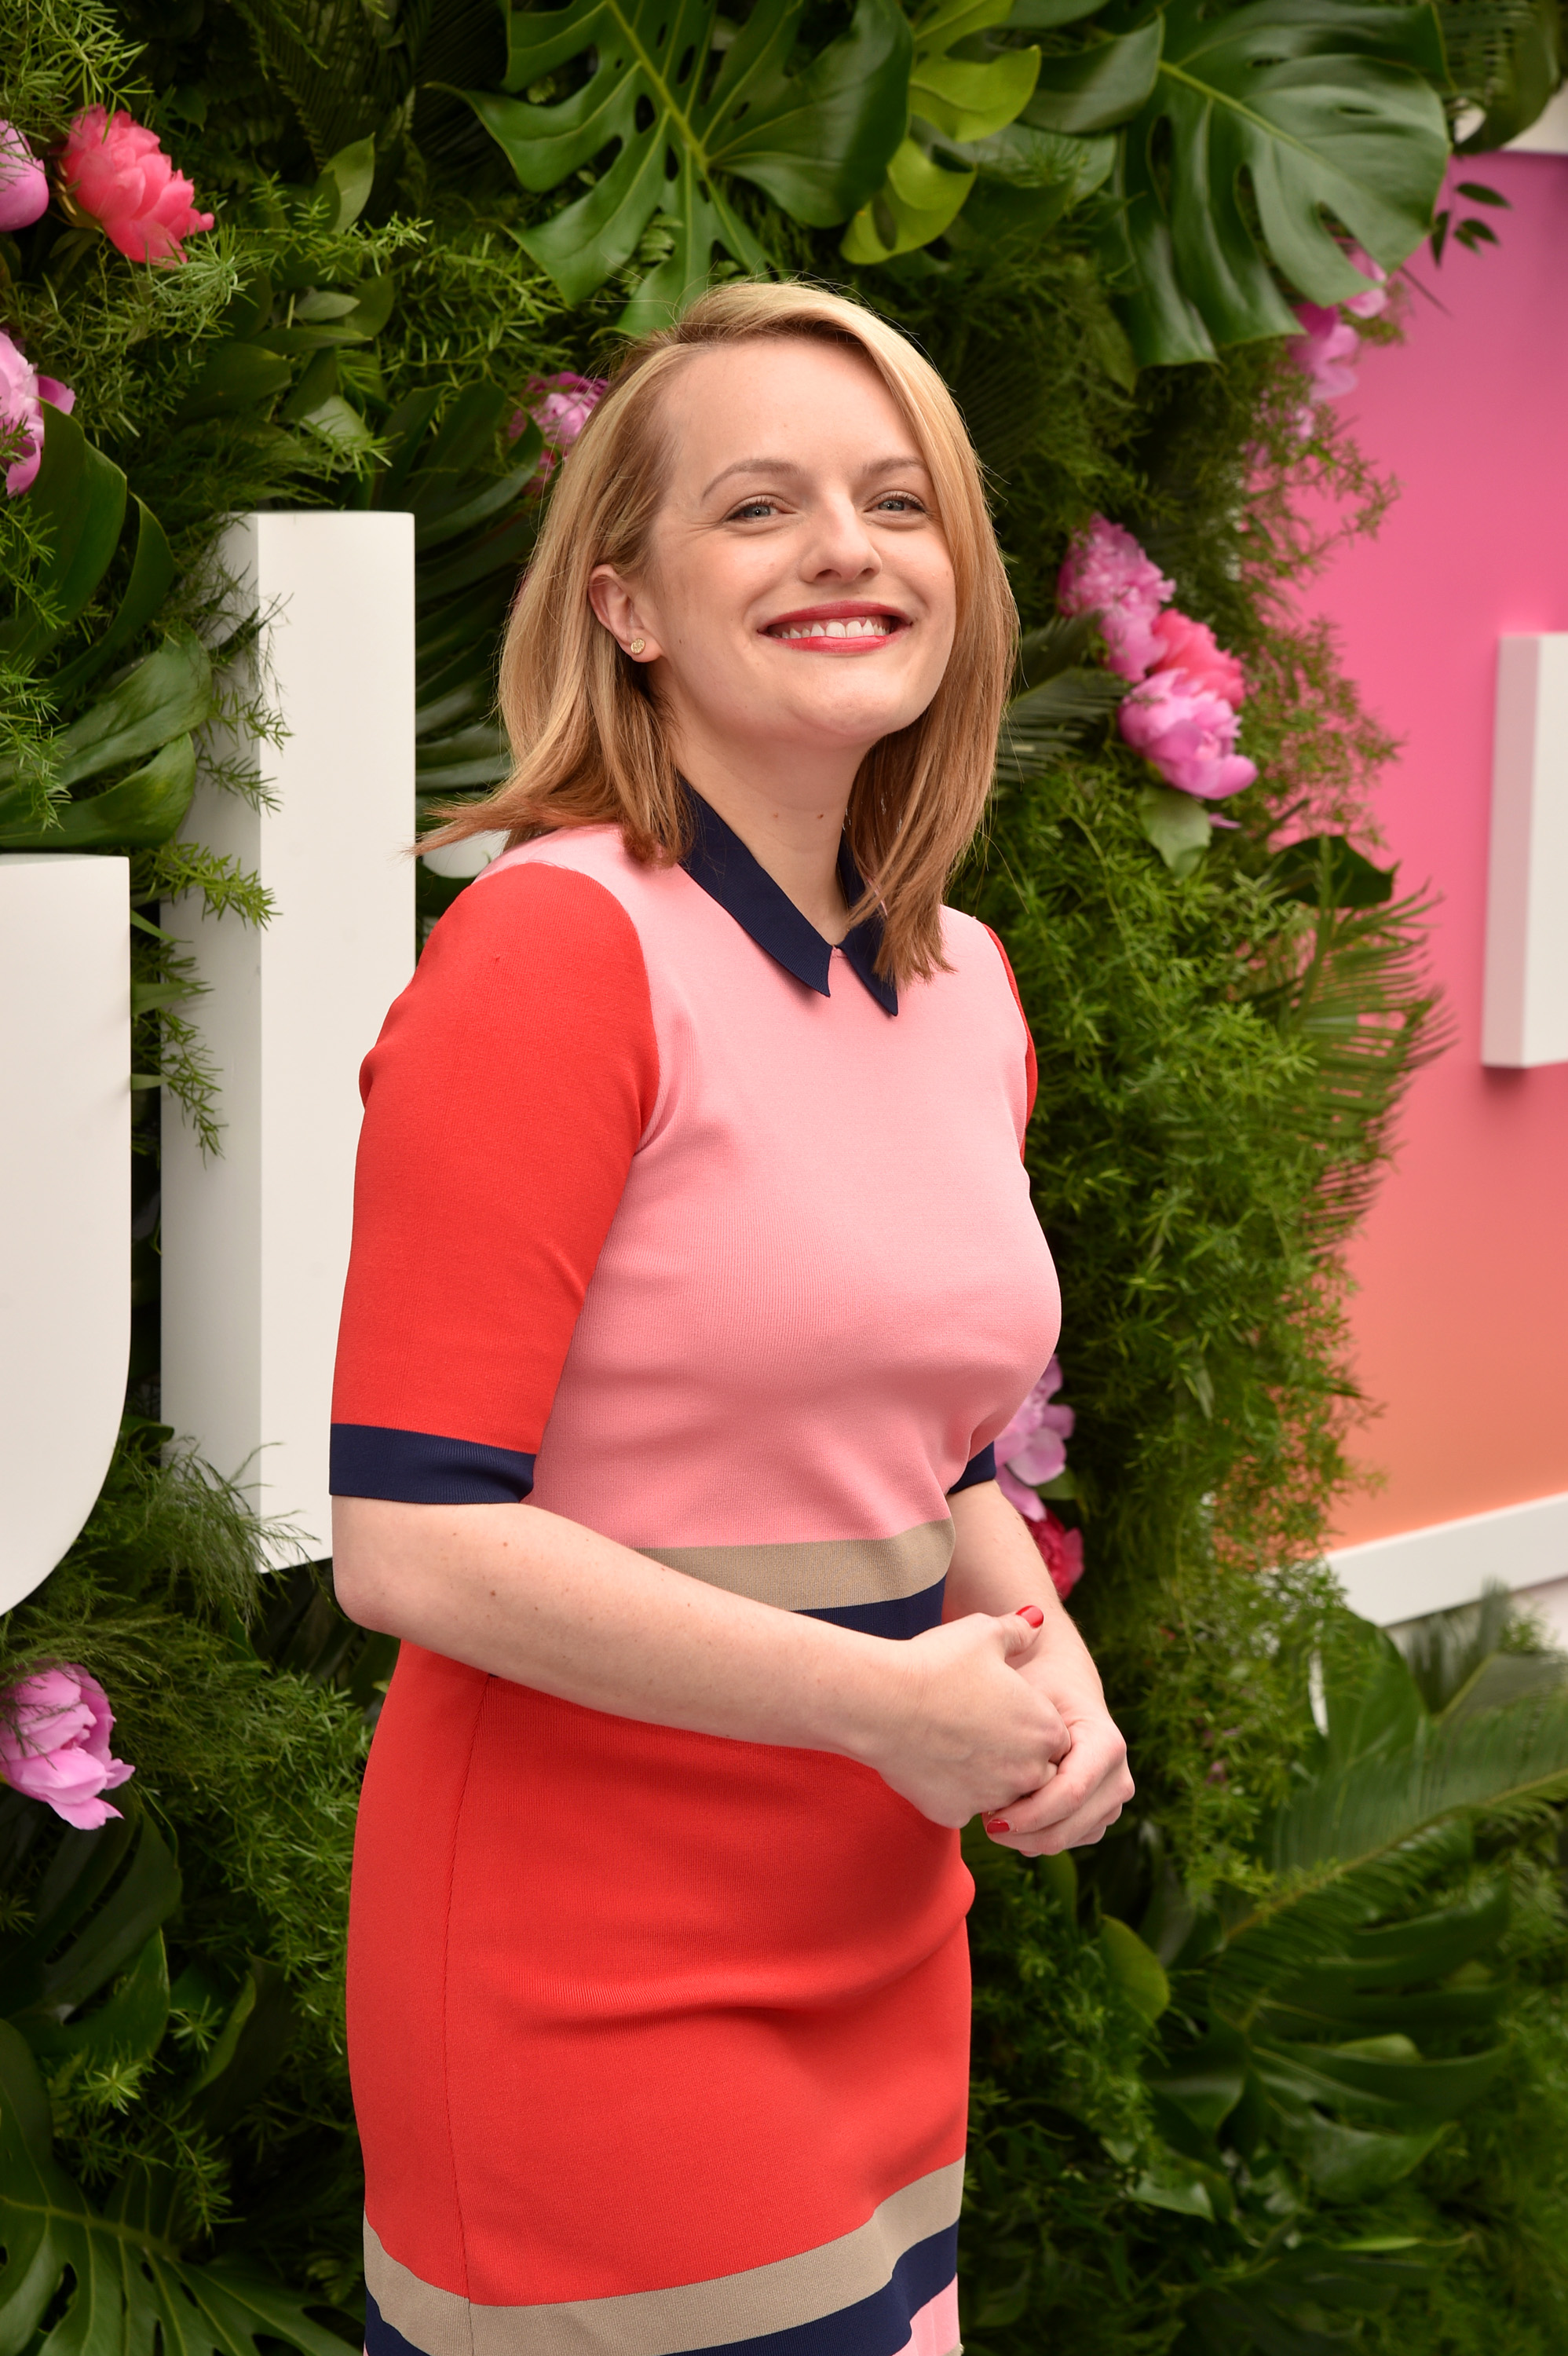 NEW YORK, NY - MAY 03:  Actress Elizabeth Moss attends the Hulu Upfront Brunch at La Sirena Ristorante on May 3, 2017 in New York City.  (Photo by Bryan Bedder/Getty Images for Hulu)